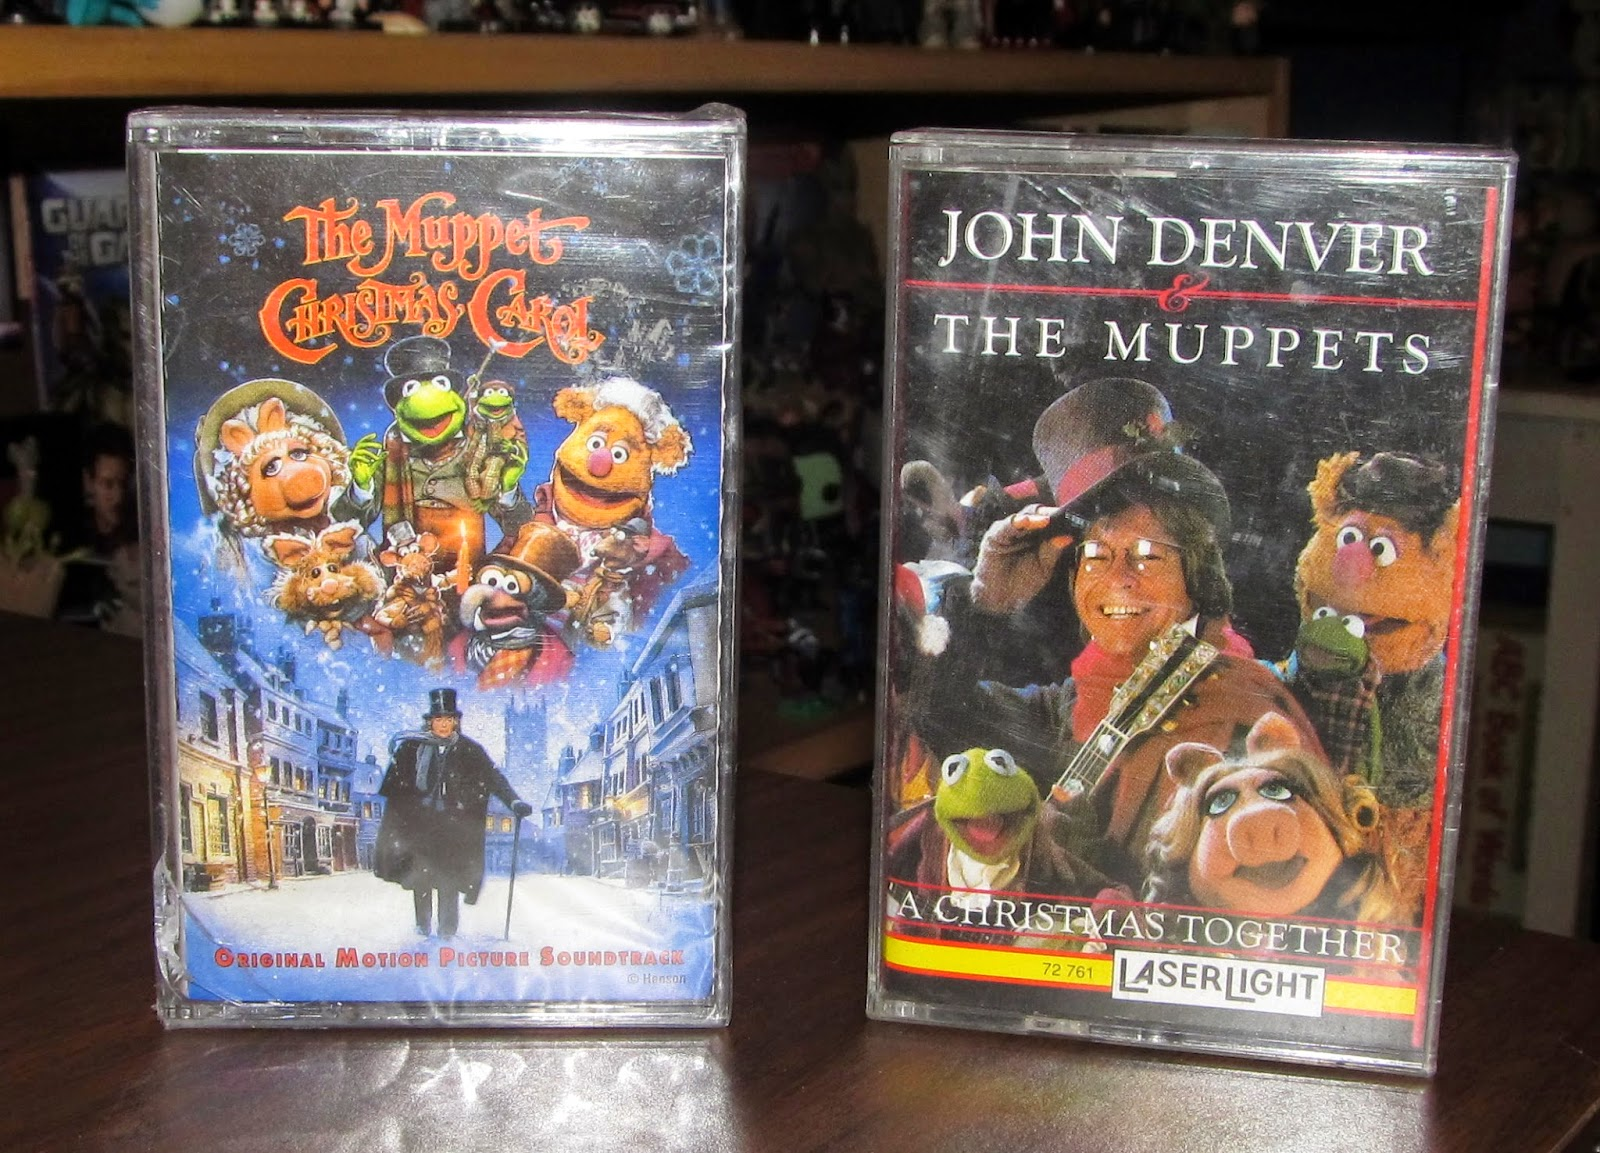 Goodwill Hunting 4 Geeks: 12 Days of Christmas Cassettes: 4 The Muppets!